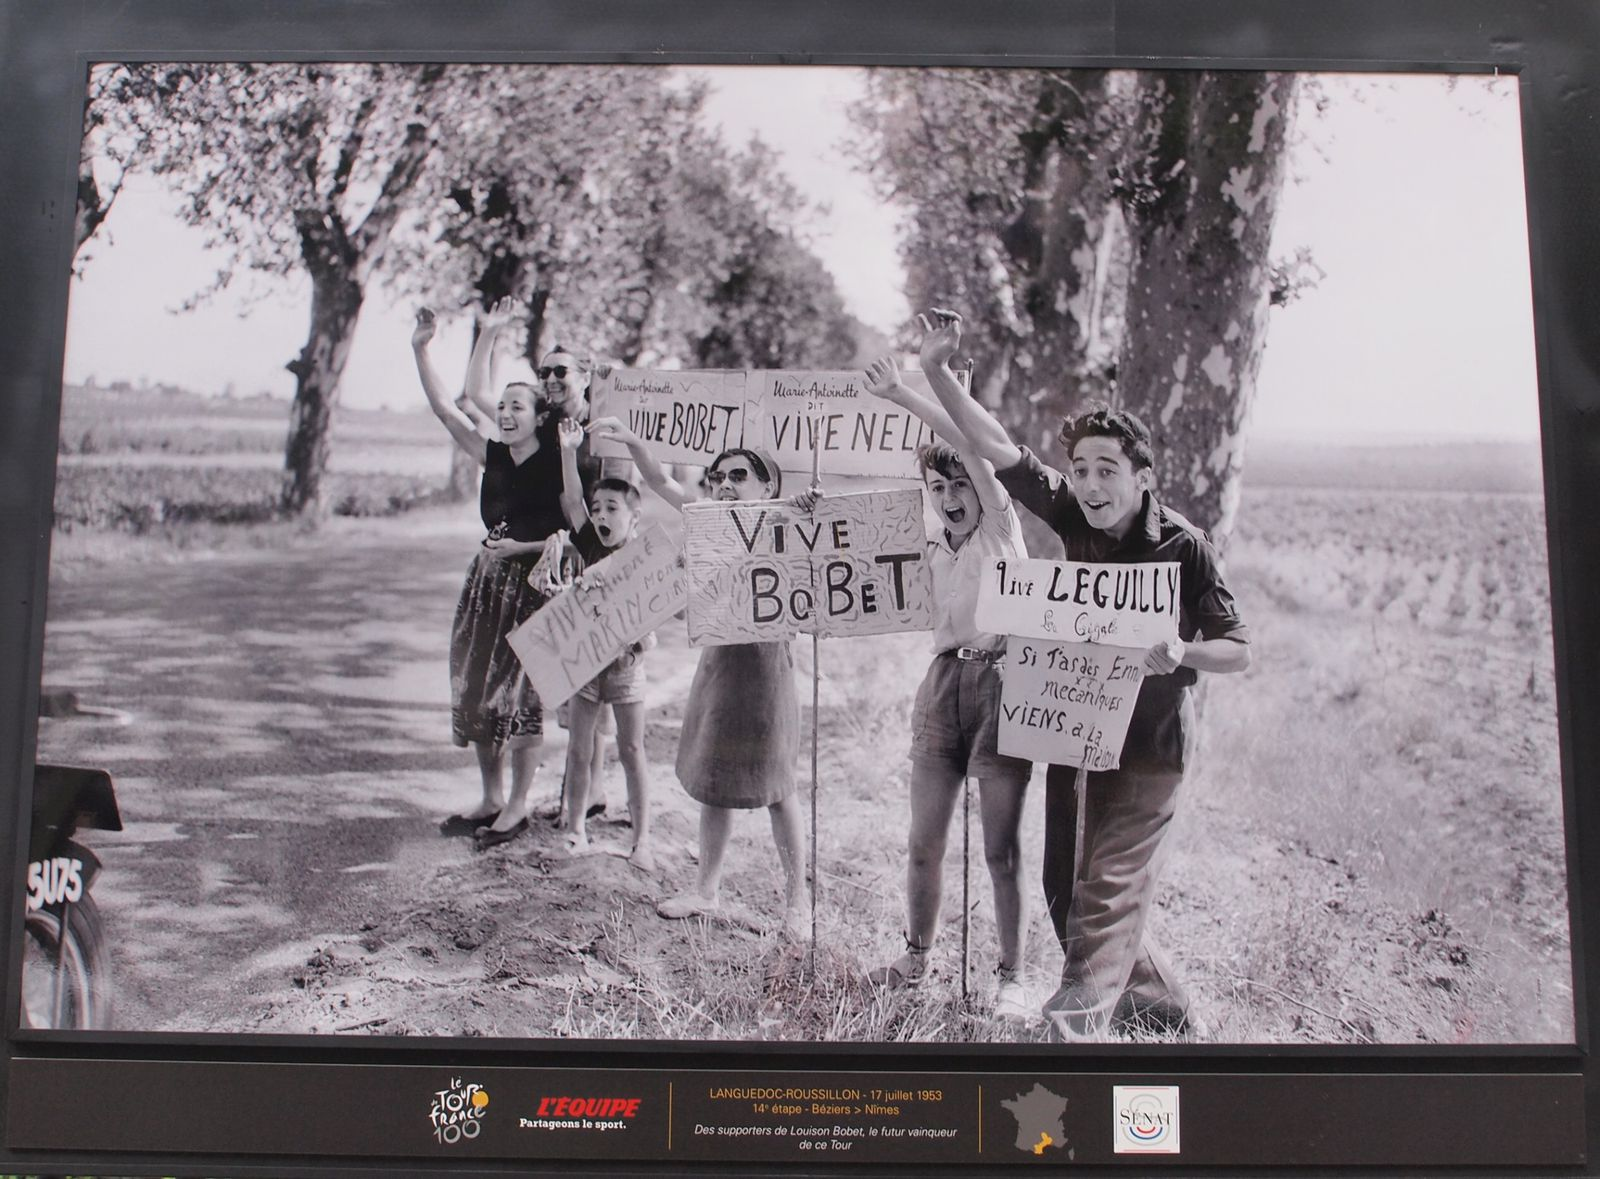 Tour-de-France-1953-supporters-Louison-Bobet-Midi-Pyrenee.JPG